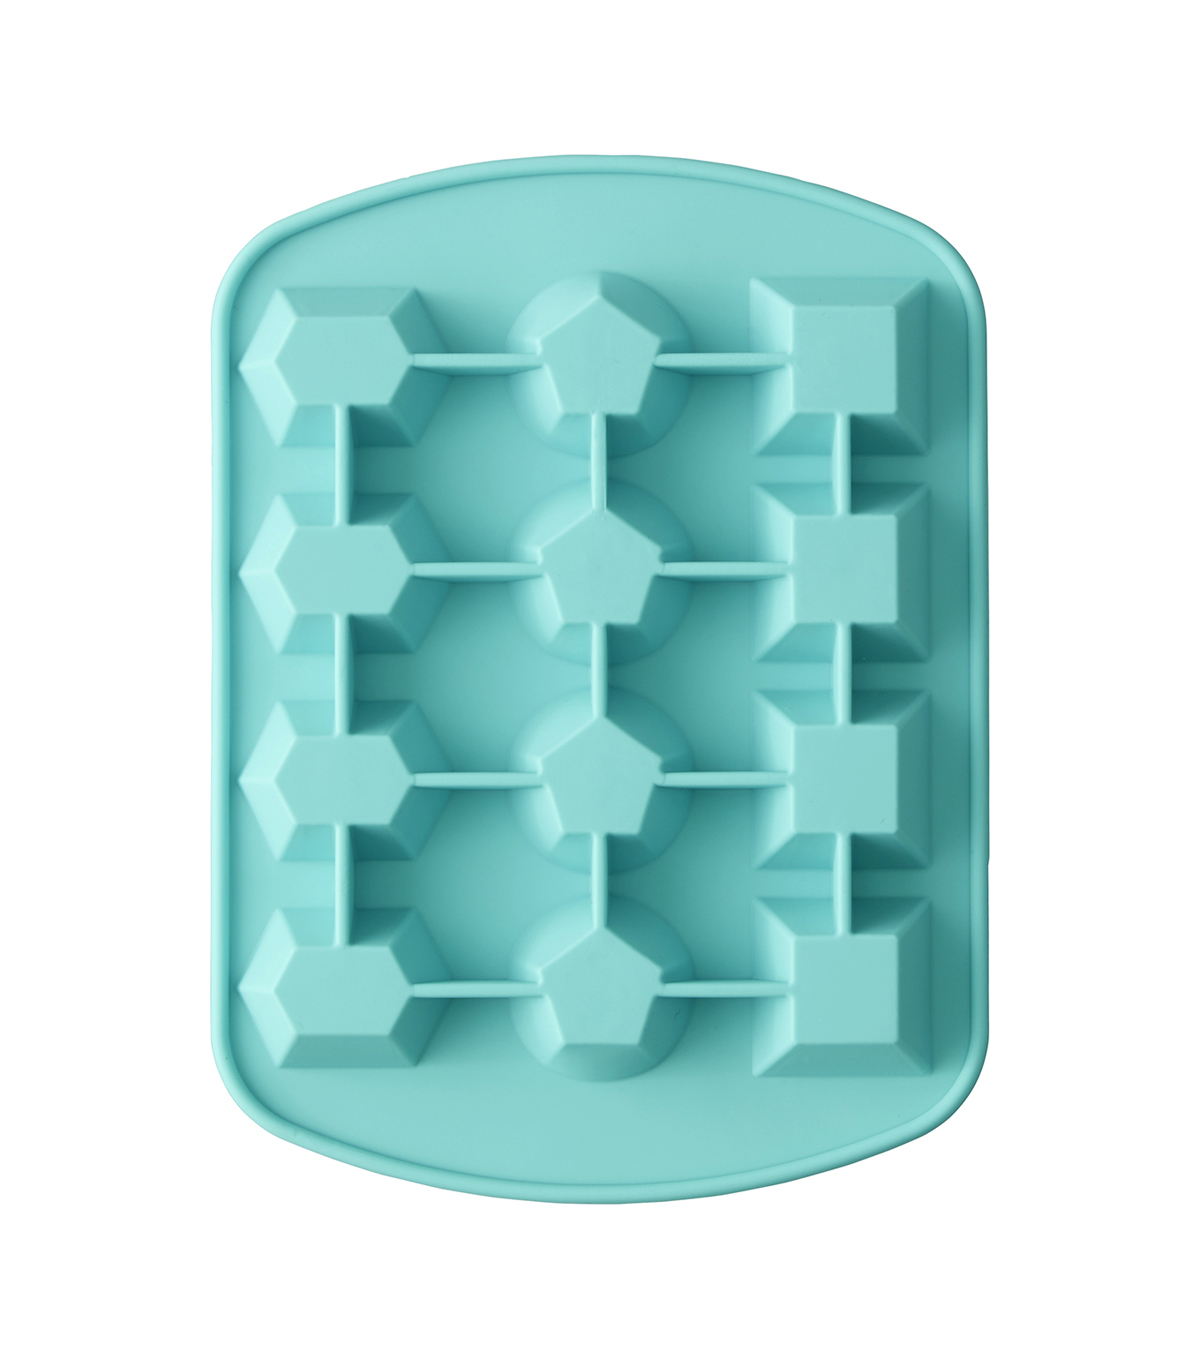 Rosanna Pansino By Wilton 12 Cavity Silicone Gem Candy Mold